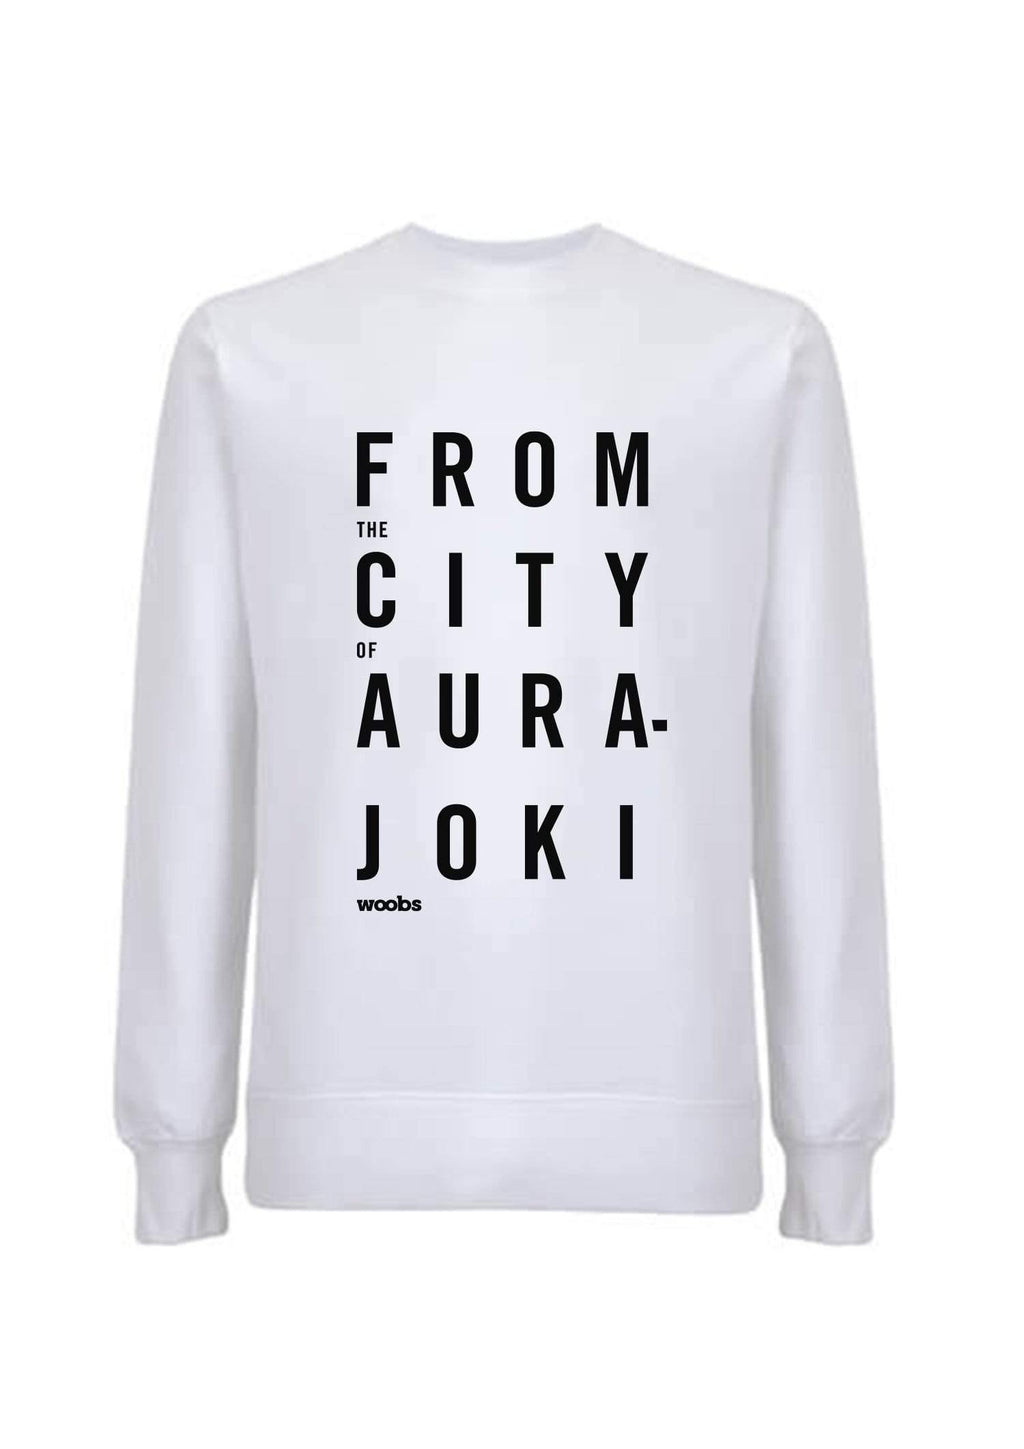 From The City Of Aurajoki, Lyric, Sweatshirt, White